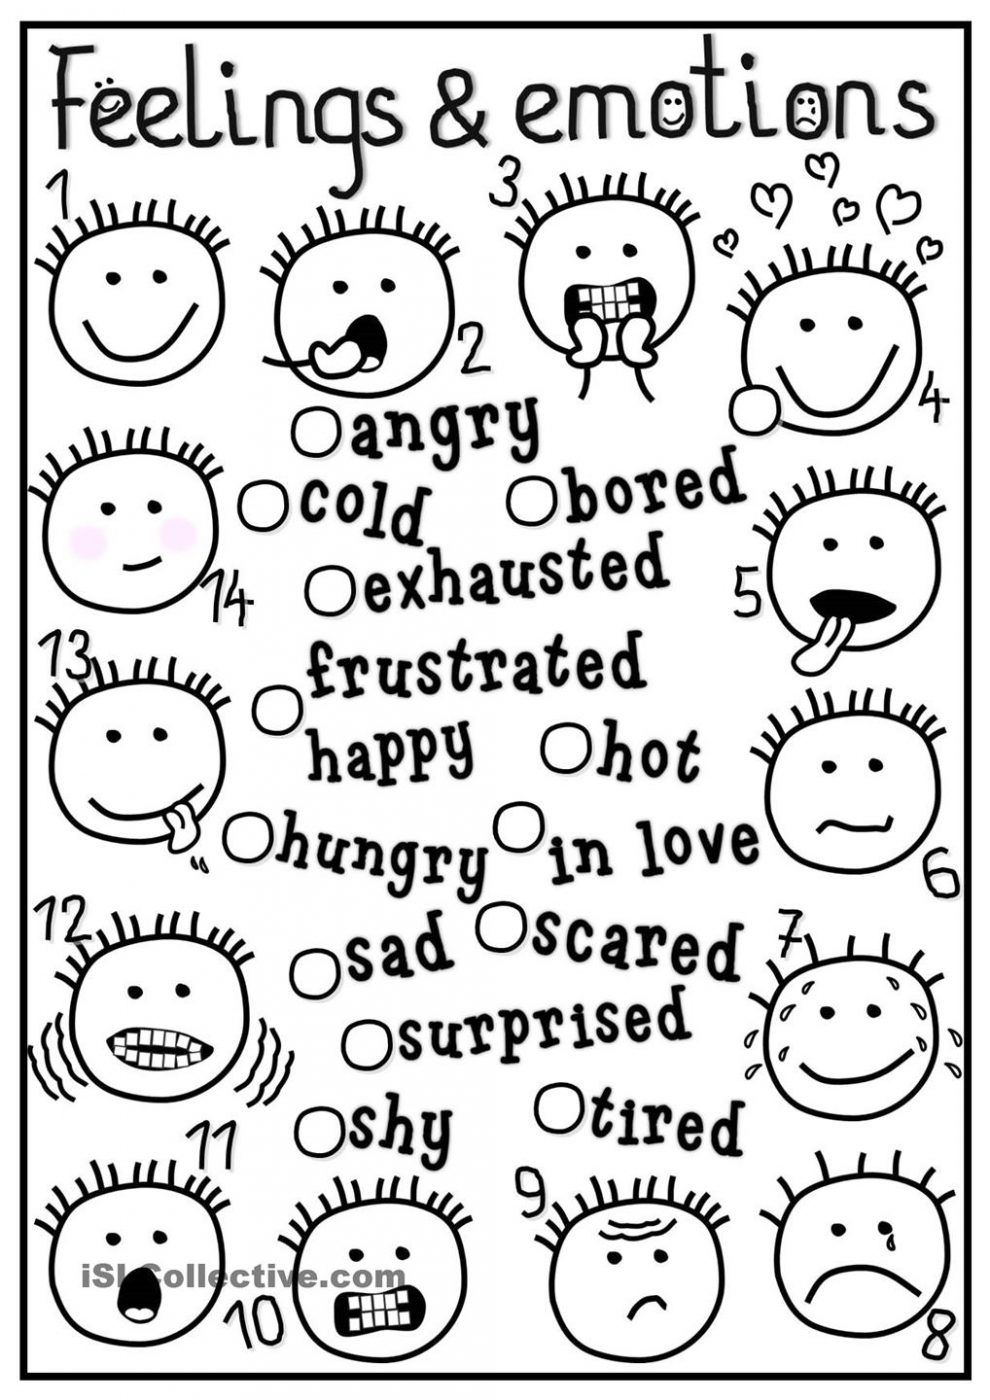 coloring emotions printable 13 best images of recognizing your emotions worksheet coloring emotions printable